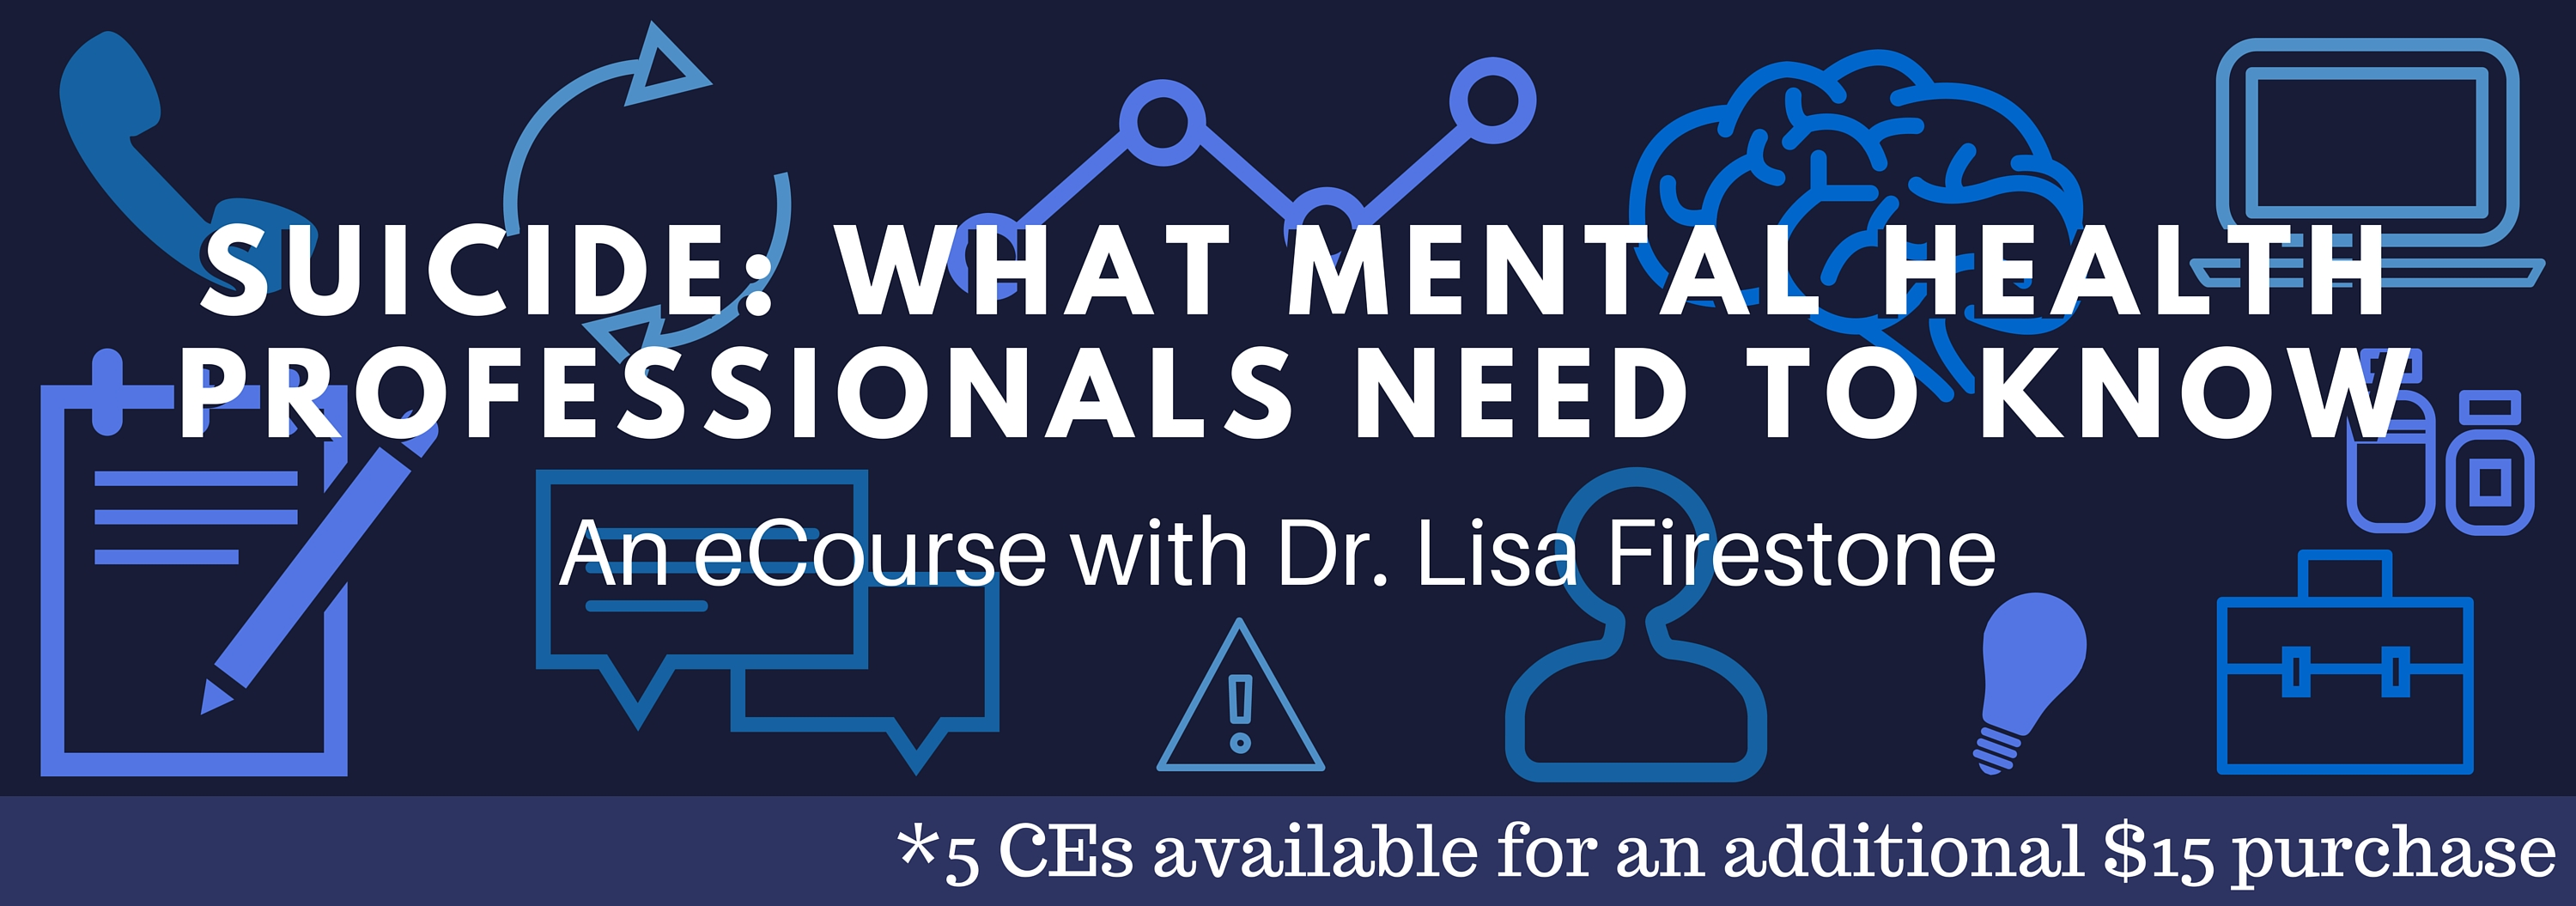 Suicide- What Mental Health Professionals need to know